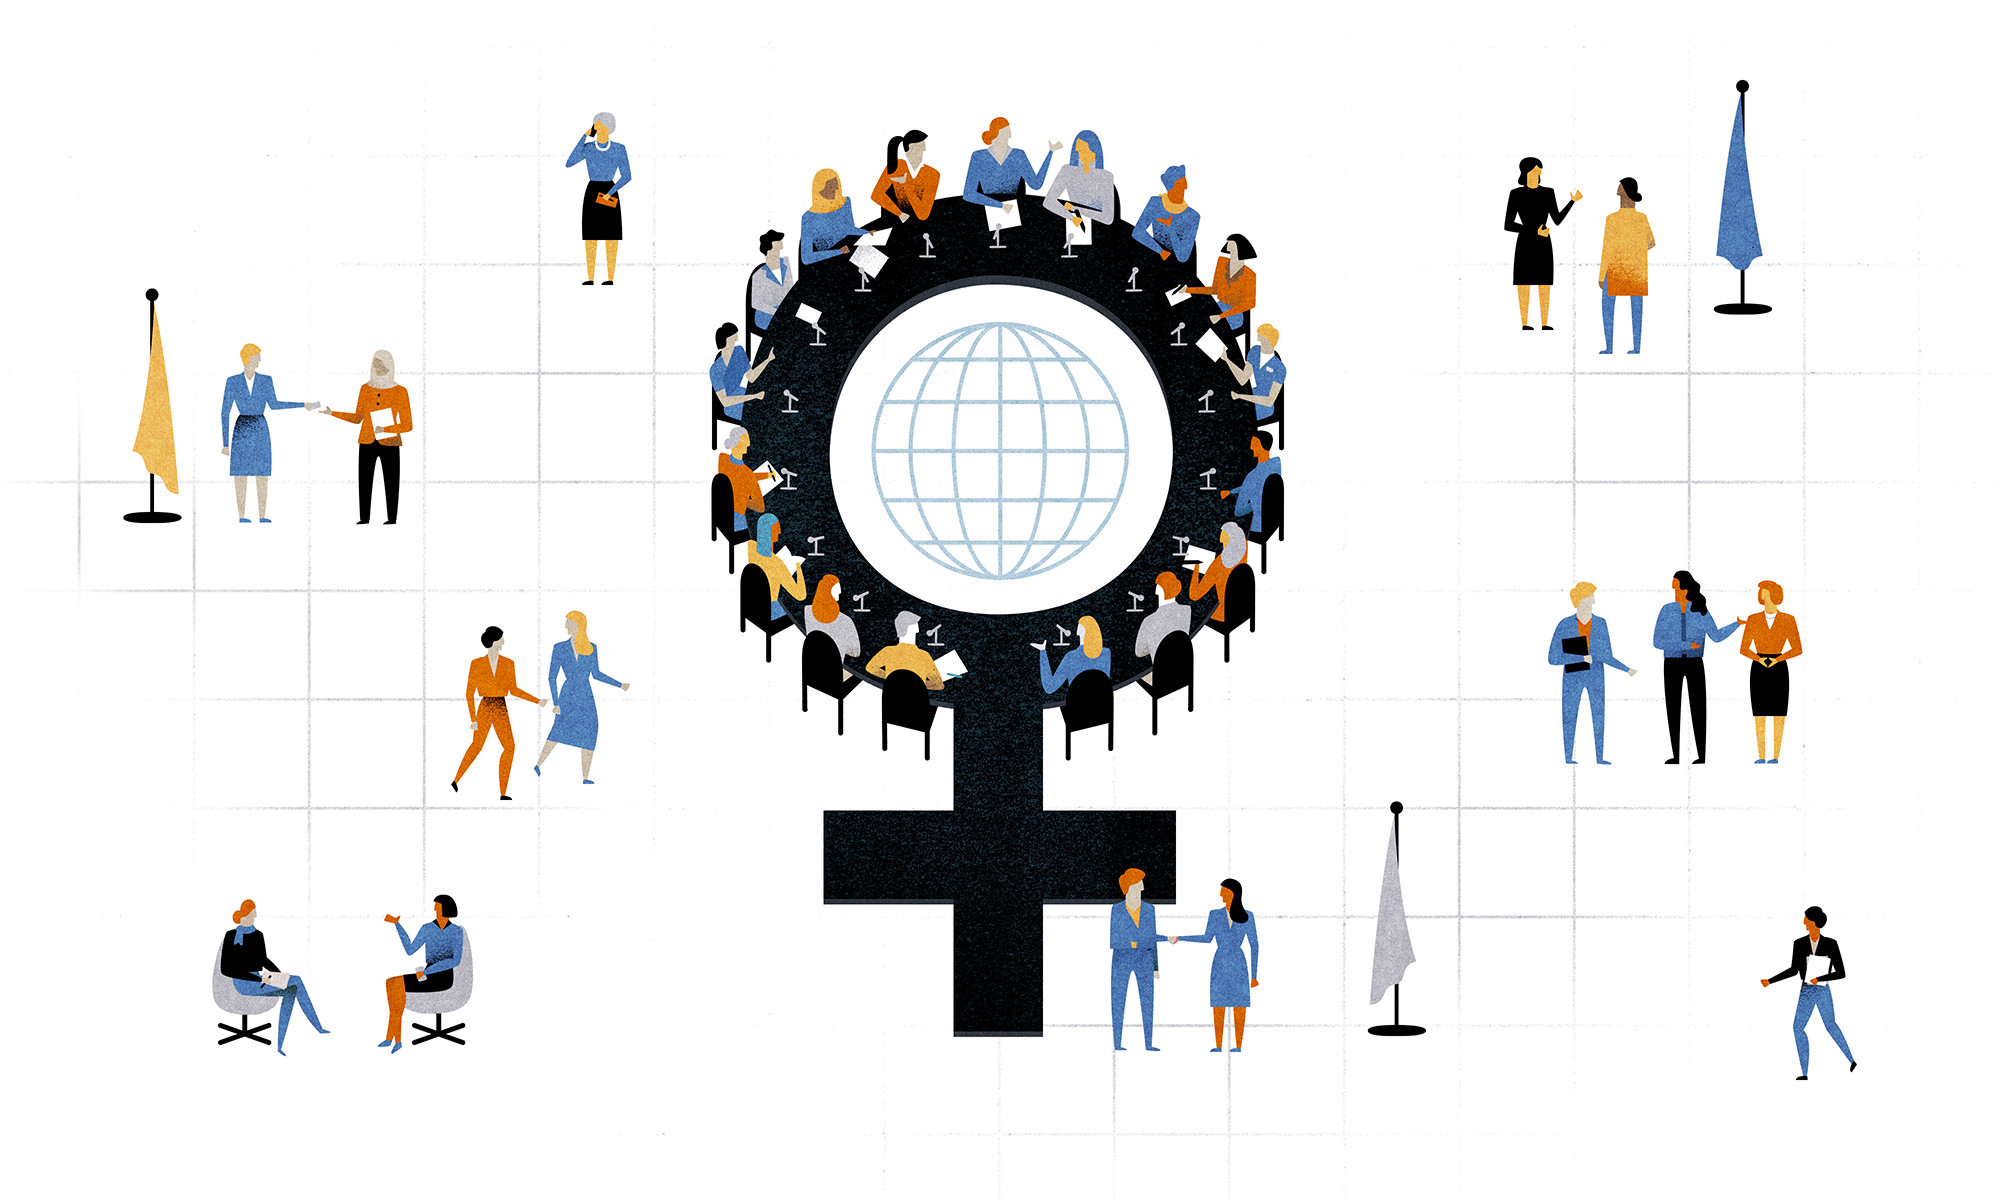 Sweden's Feminist Foreign Policy – And how it might be a way to make the world a bit better